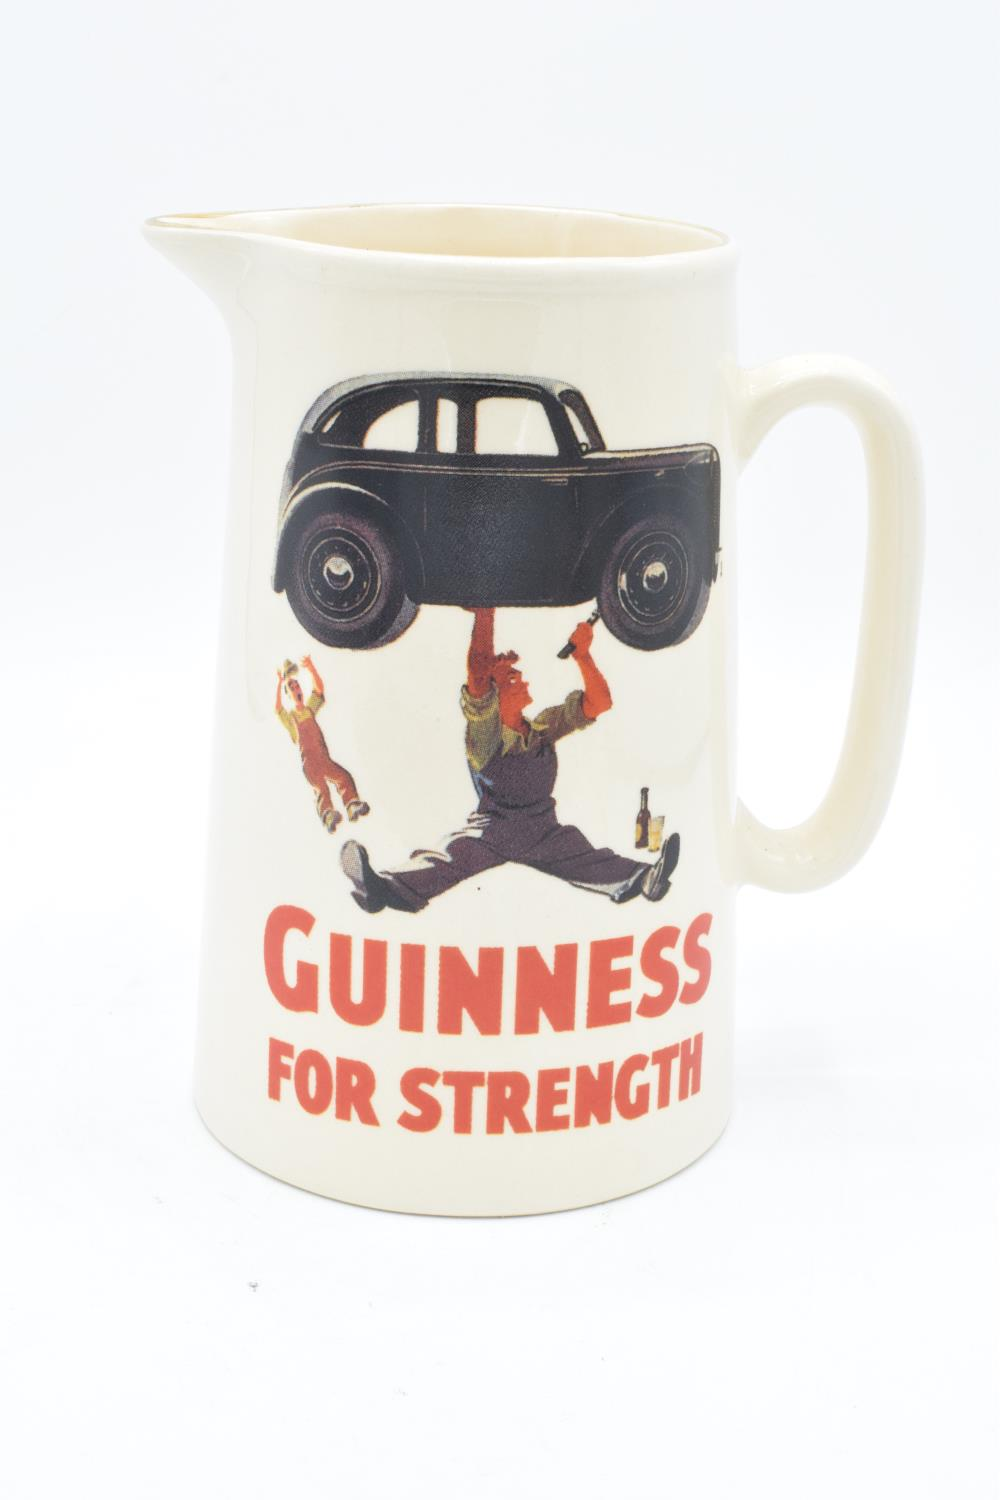 Guinness pub advertising jug 'Guinness for Strength'. In good condition with no obvious damage or